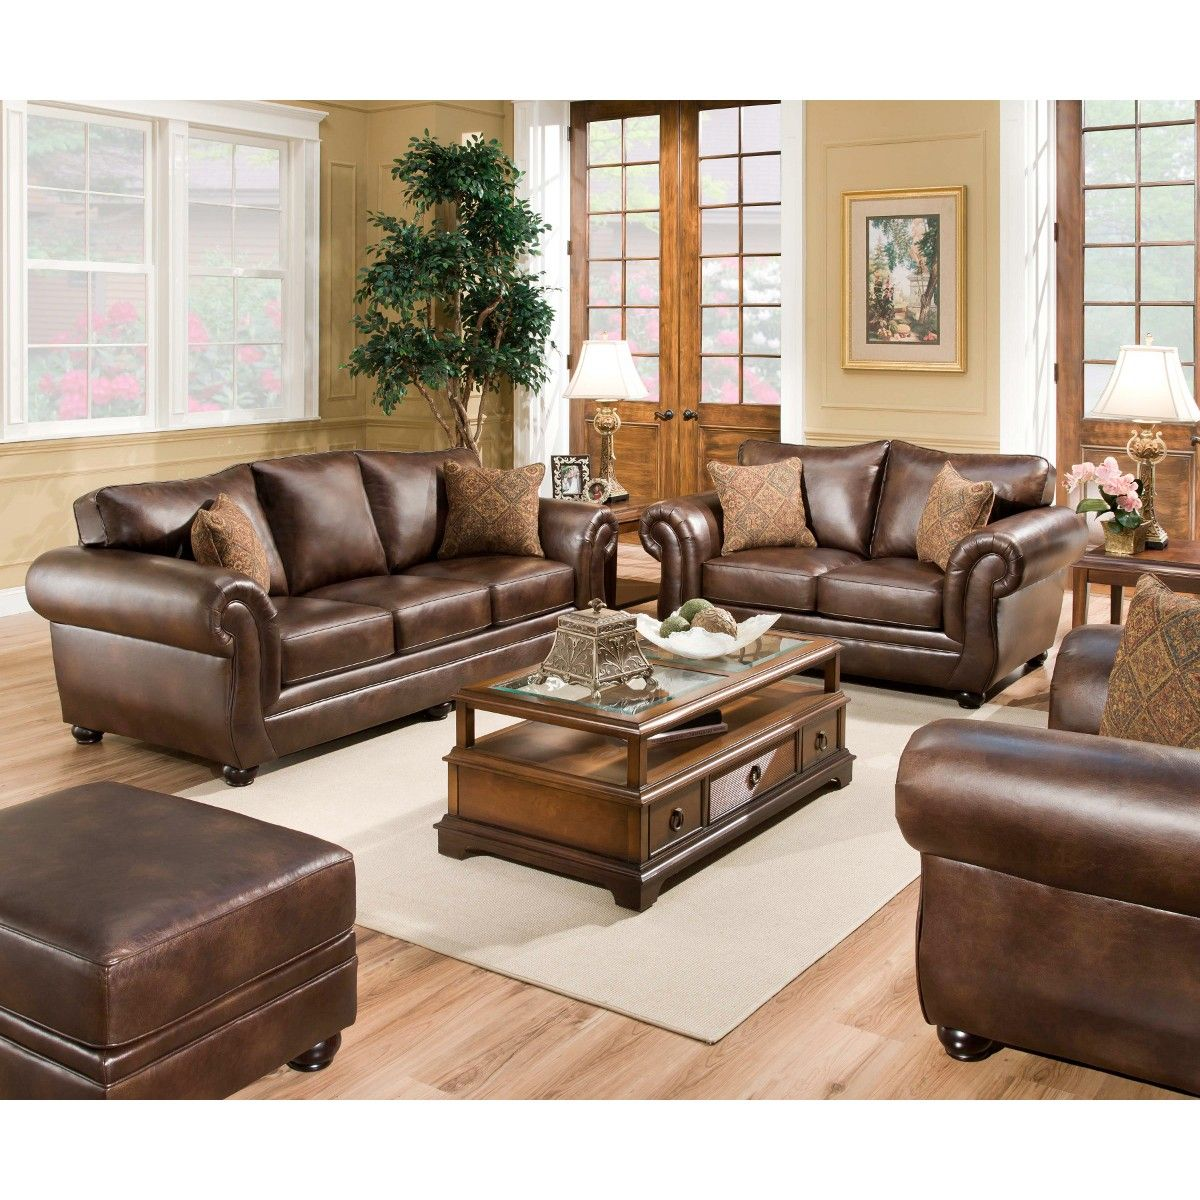 Best United Miracle Sofa Leather 4280Mirsofa Conn S Living Room Leather Leather Living Room 400 x 300